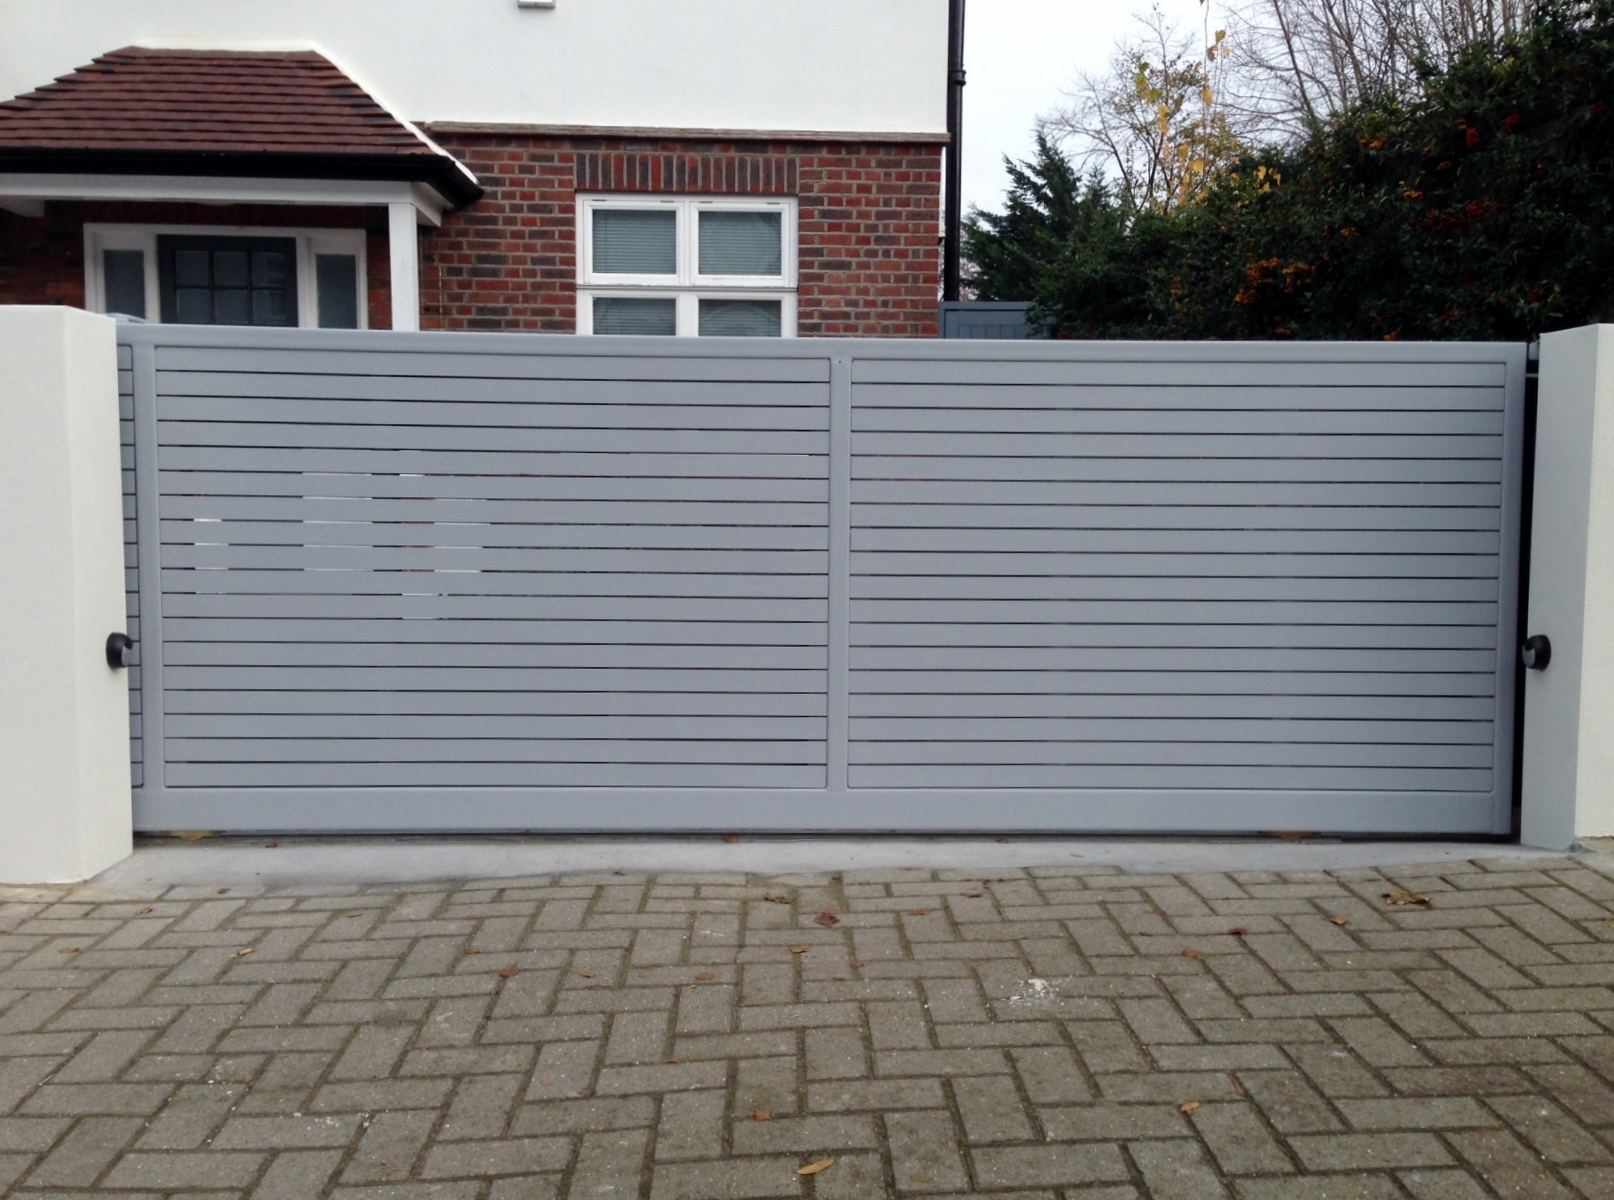 front boundary wall screen automated electronic gate installation grey wooden fence bike store modern garden design balham clapham london (10)